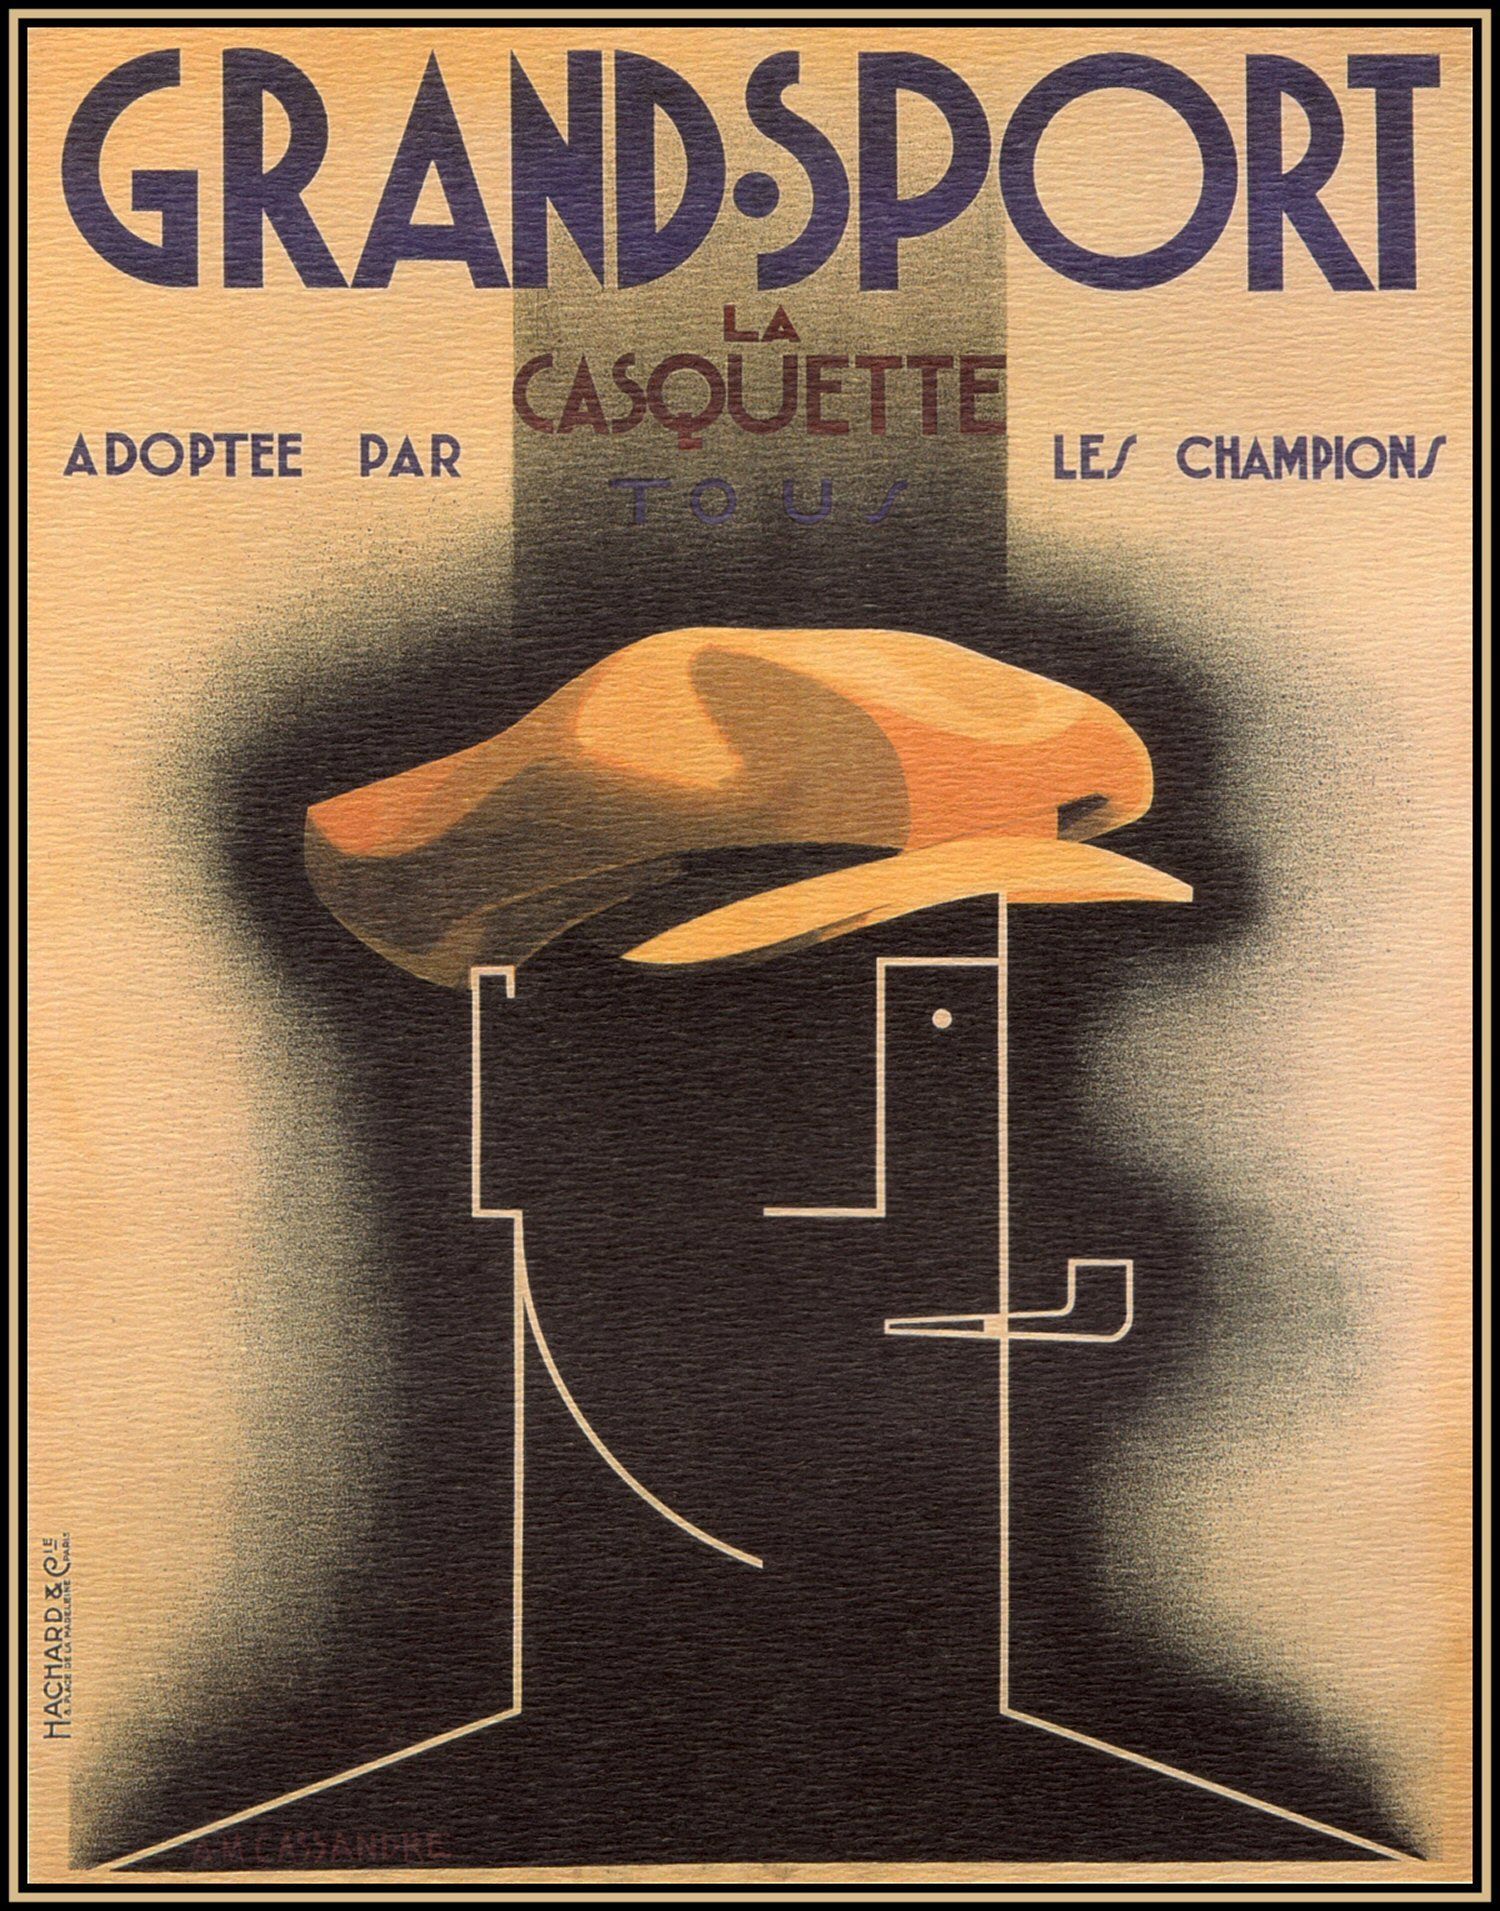 1925 GRAND SPORT CHAMPIONS CHOICE Adolphe Mouron CASSANDRE ABSTRACT ART POSTER